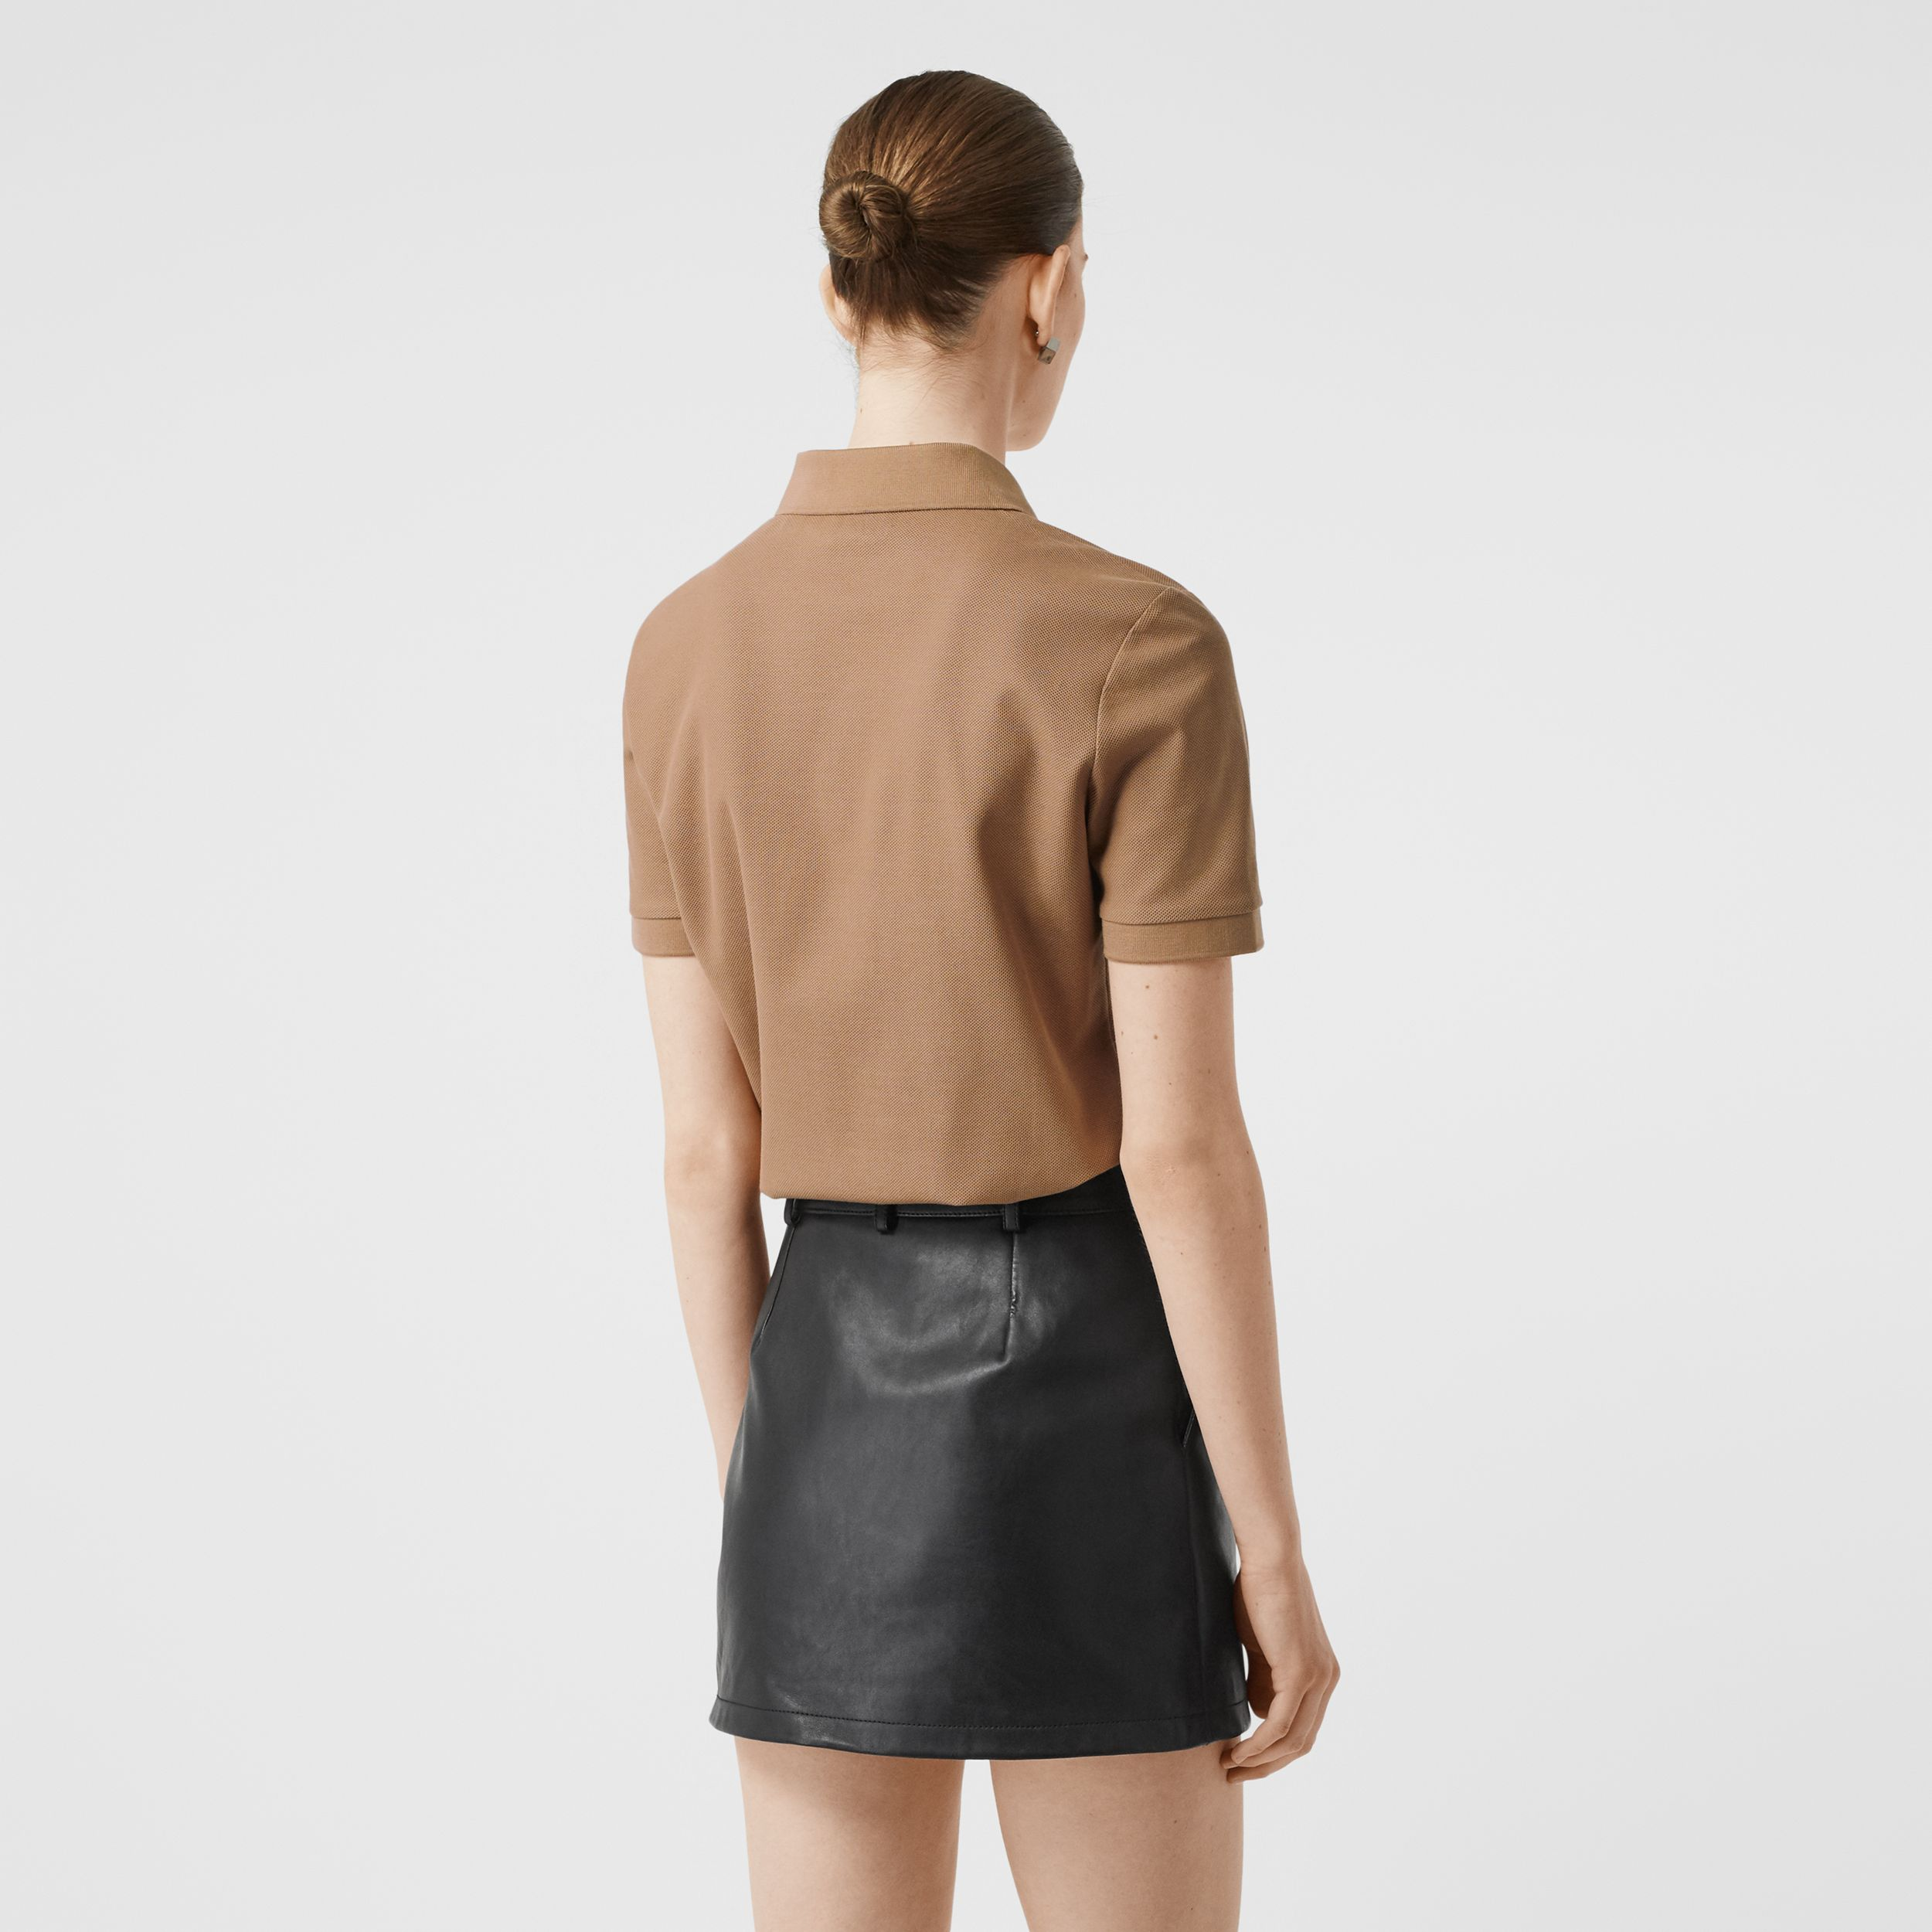 Monogram Motif Cotton Piqué Polo Shirt in Camel - Women | Burberry Singapore - 3